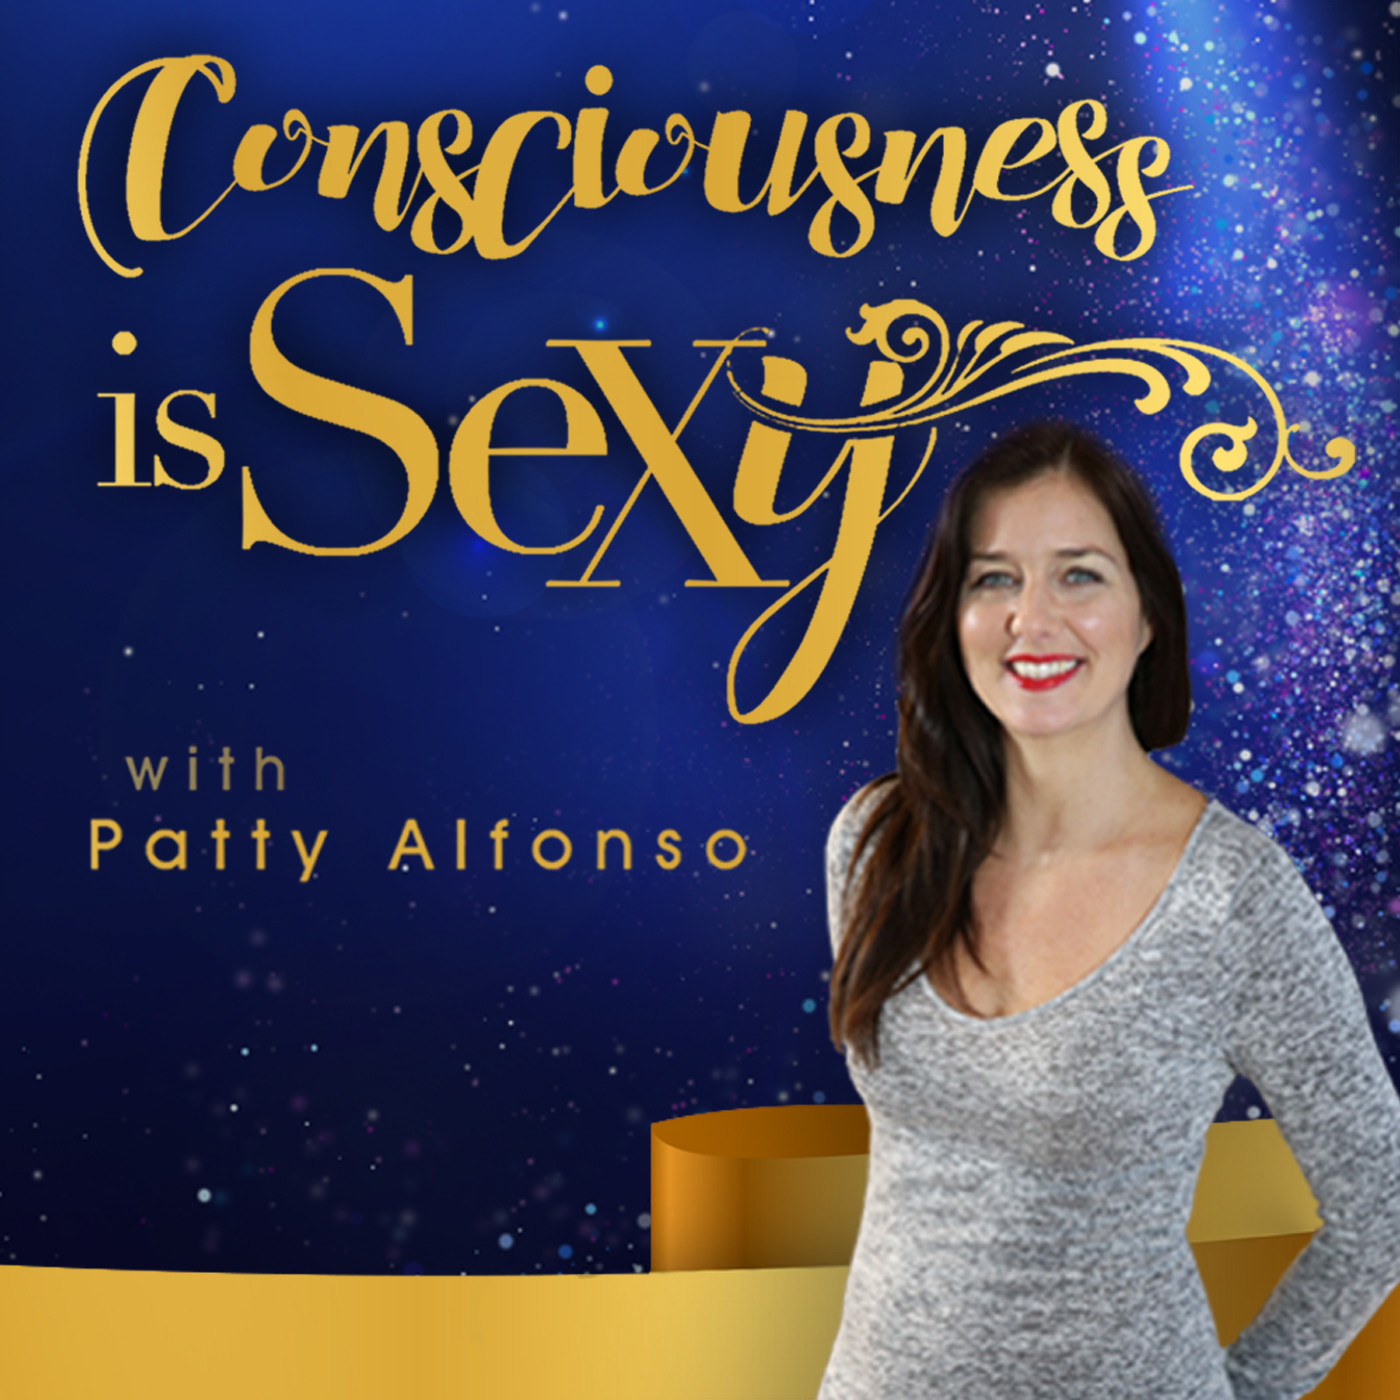 Consciousness is Sexy with Patty Alfonso